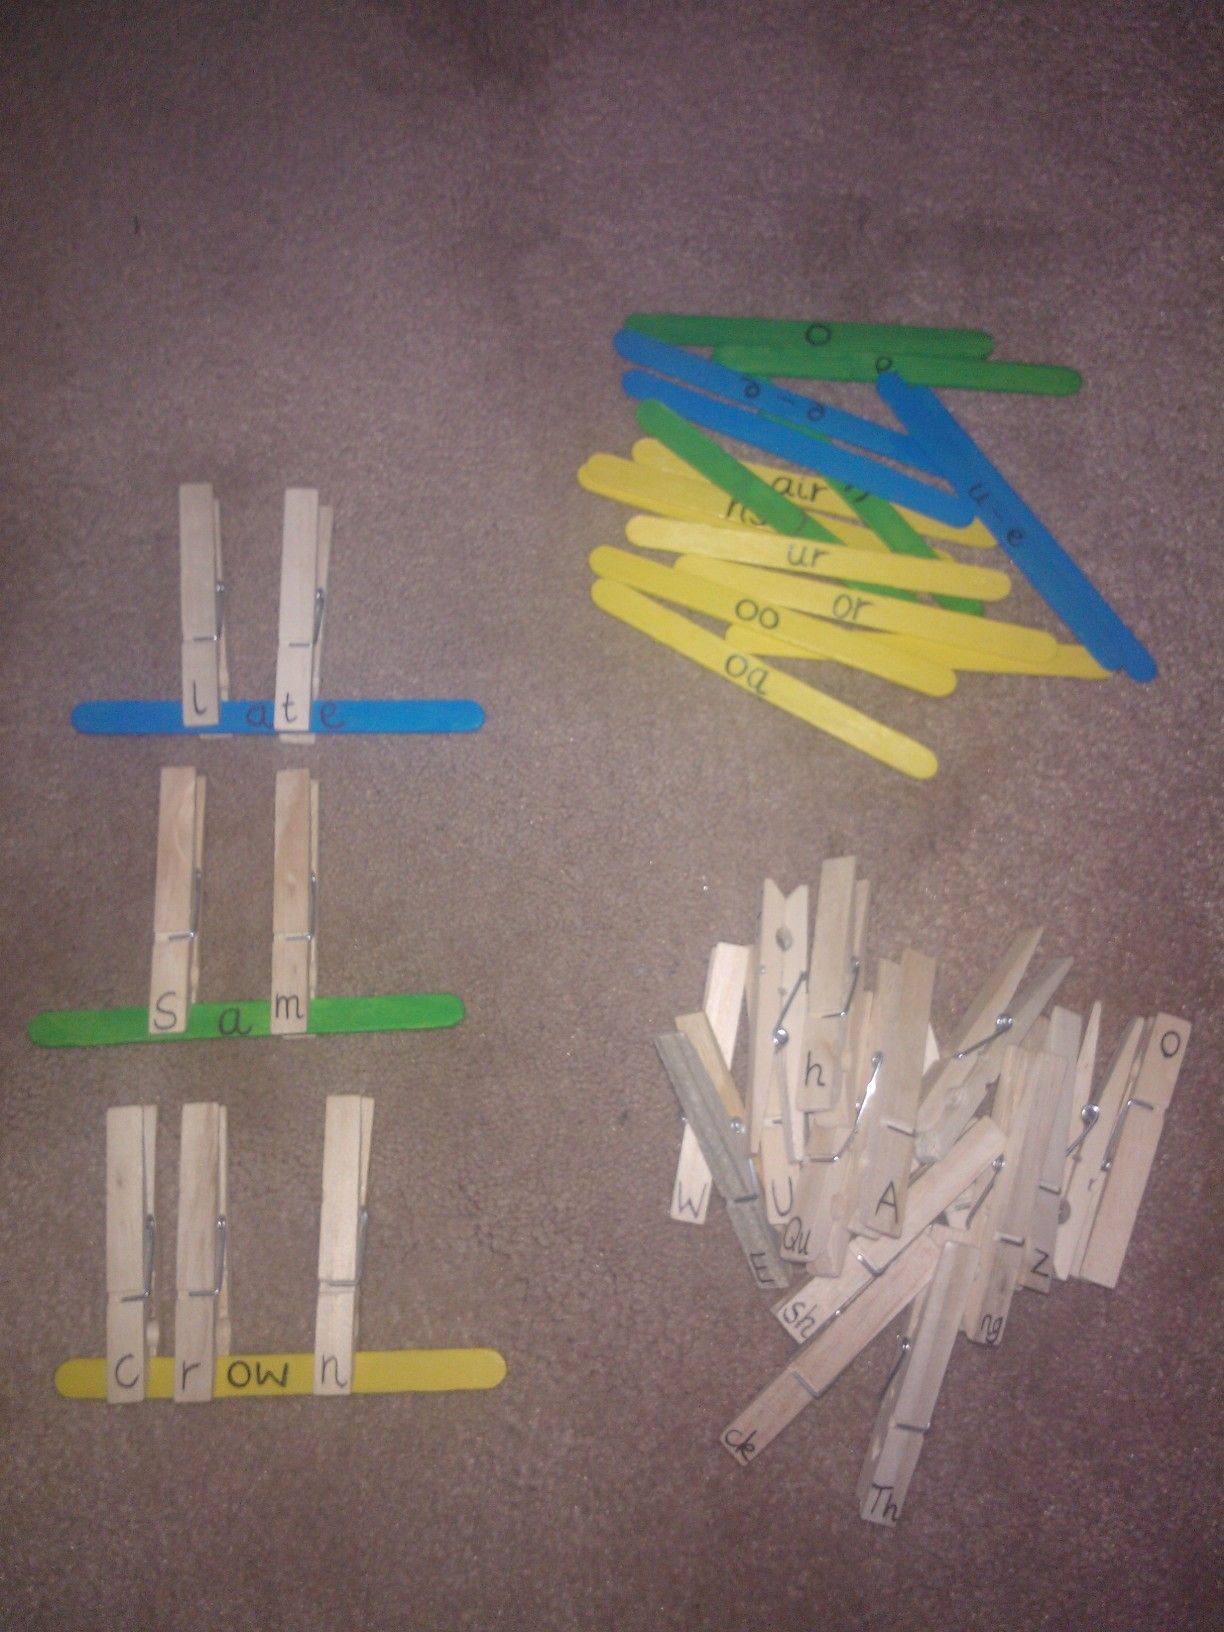 Simple Phonics Activity For Children To Explore Blending Sounds And Making Words